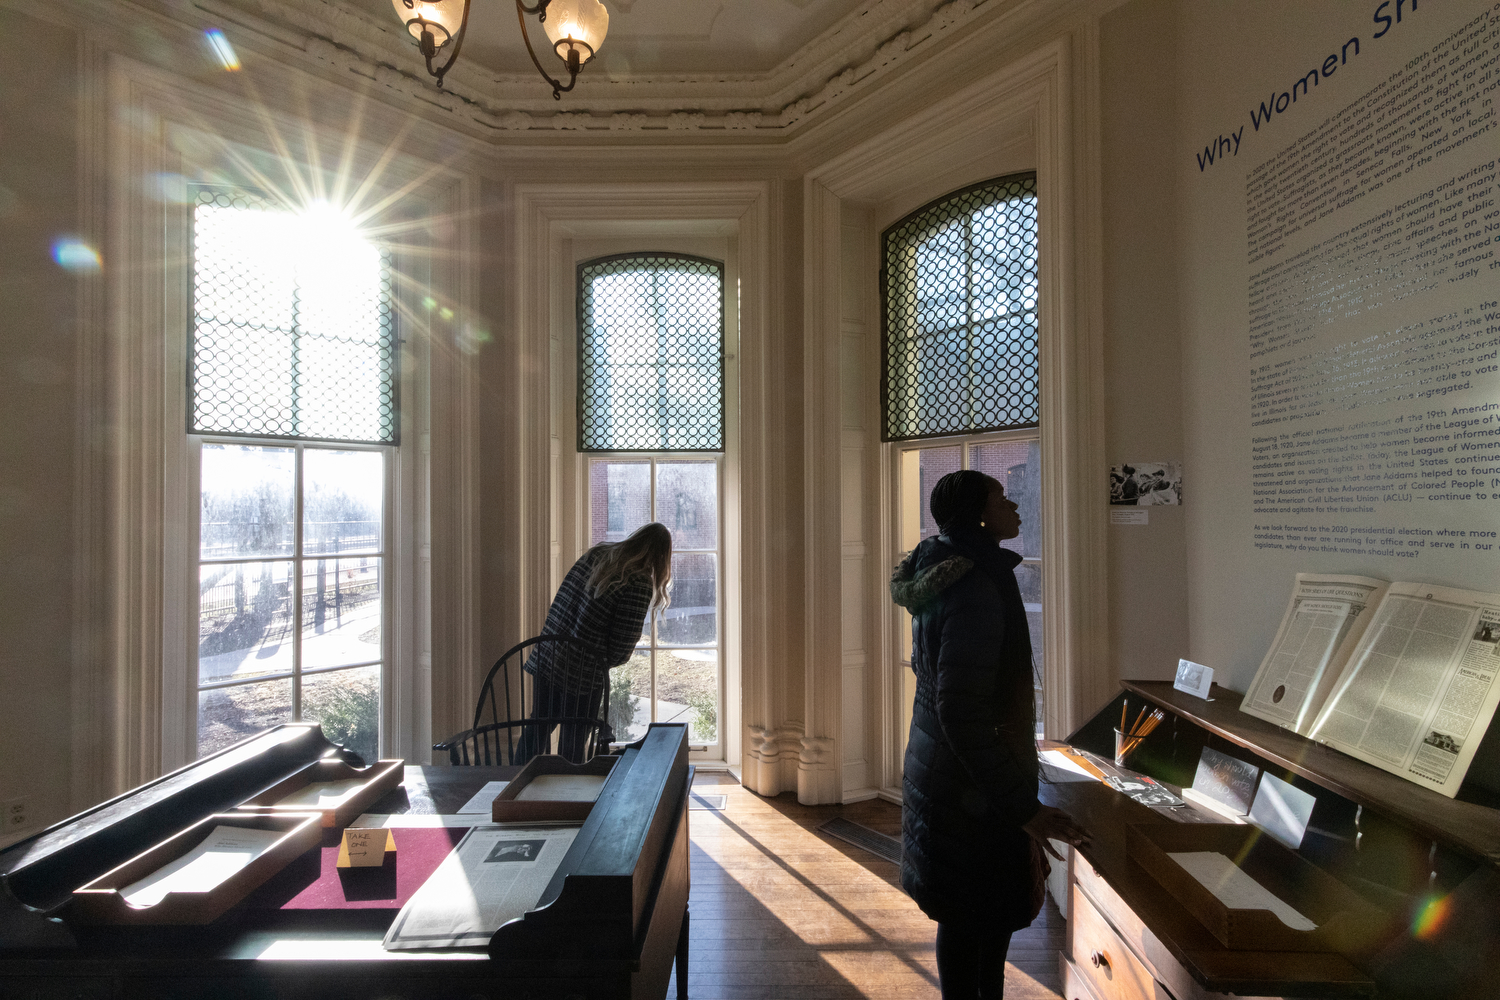 Nursing students meander through Jane Addams Hull House after a tour for their class on community and public health. Nursing professors Gerry Gorman and Rebecca Singer believe Jane Addams' work at Hull House is foundational to the social justice issues we face today.